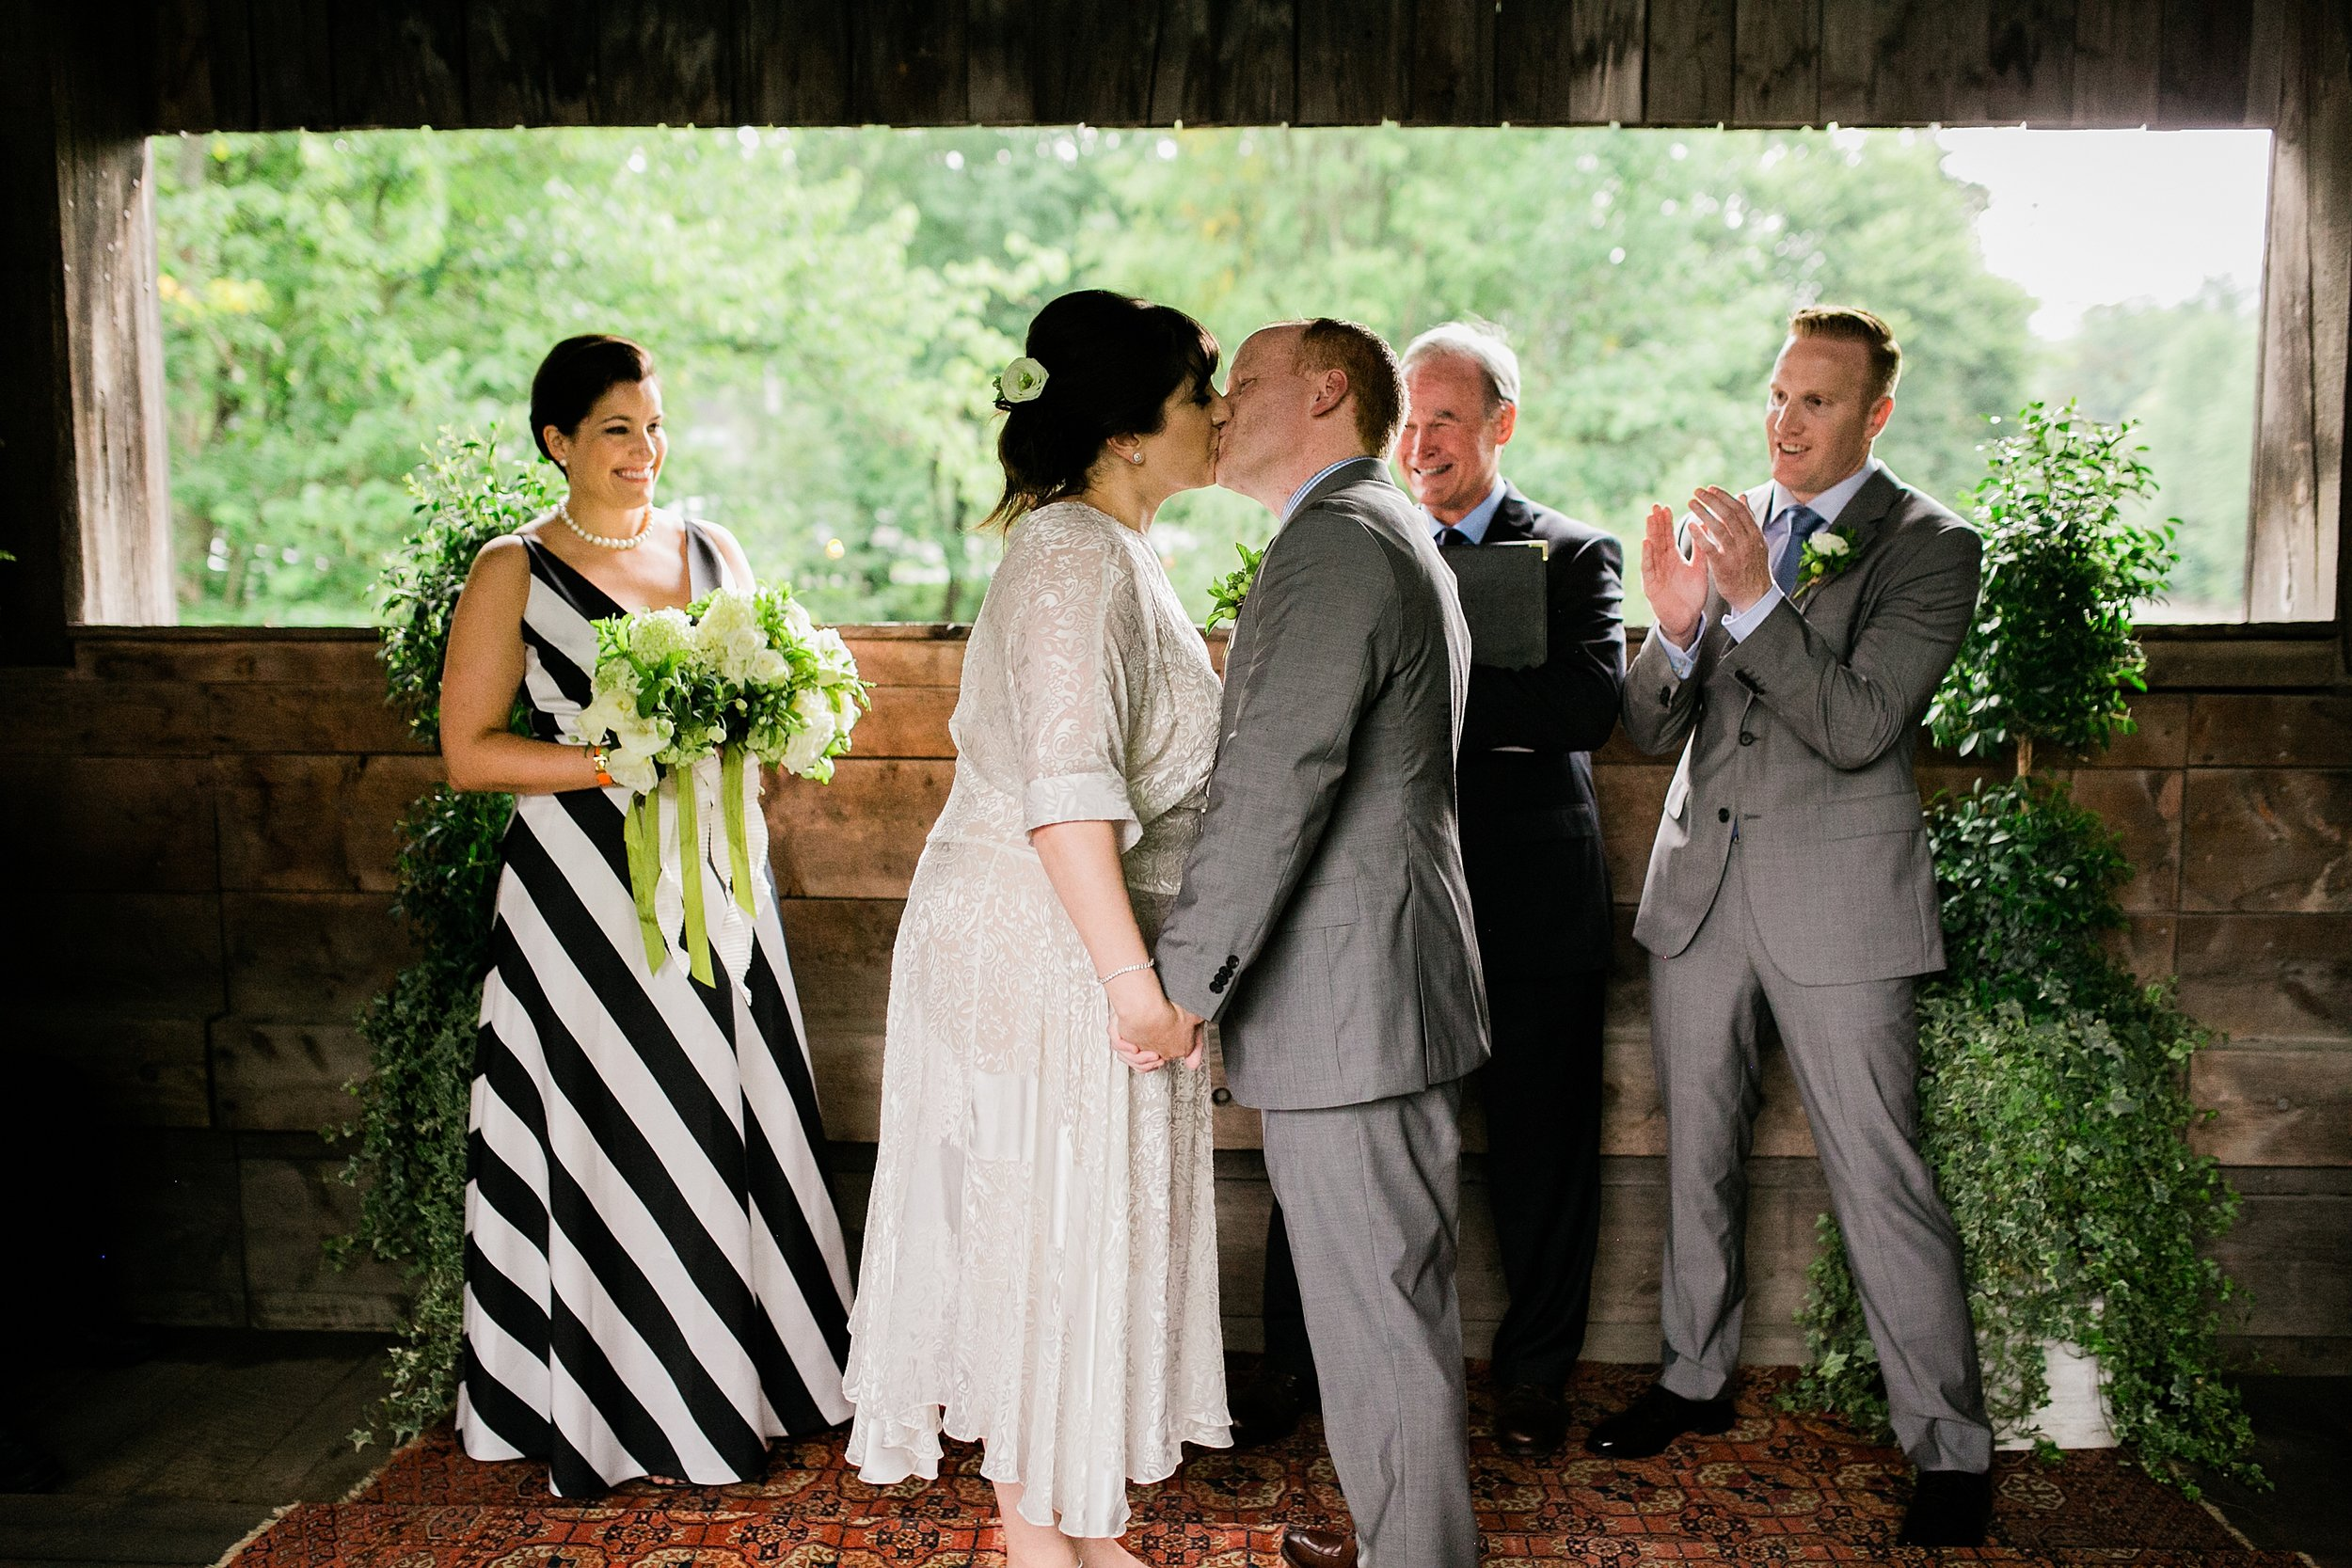 031-los-angeles-wedding-photography-todd-danforth-vermont.jpg